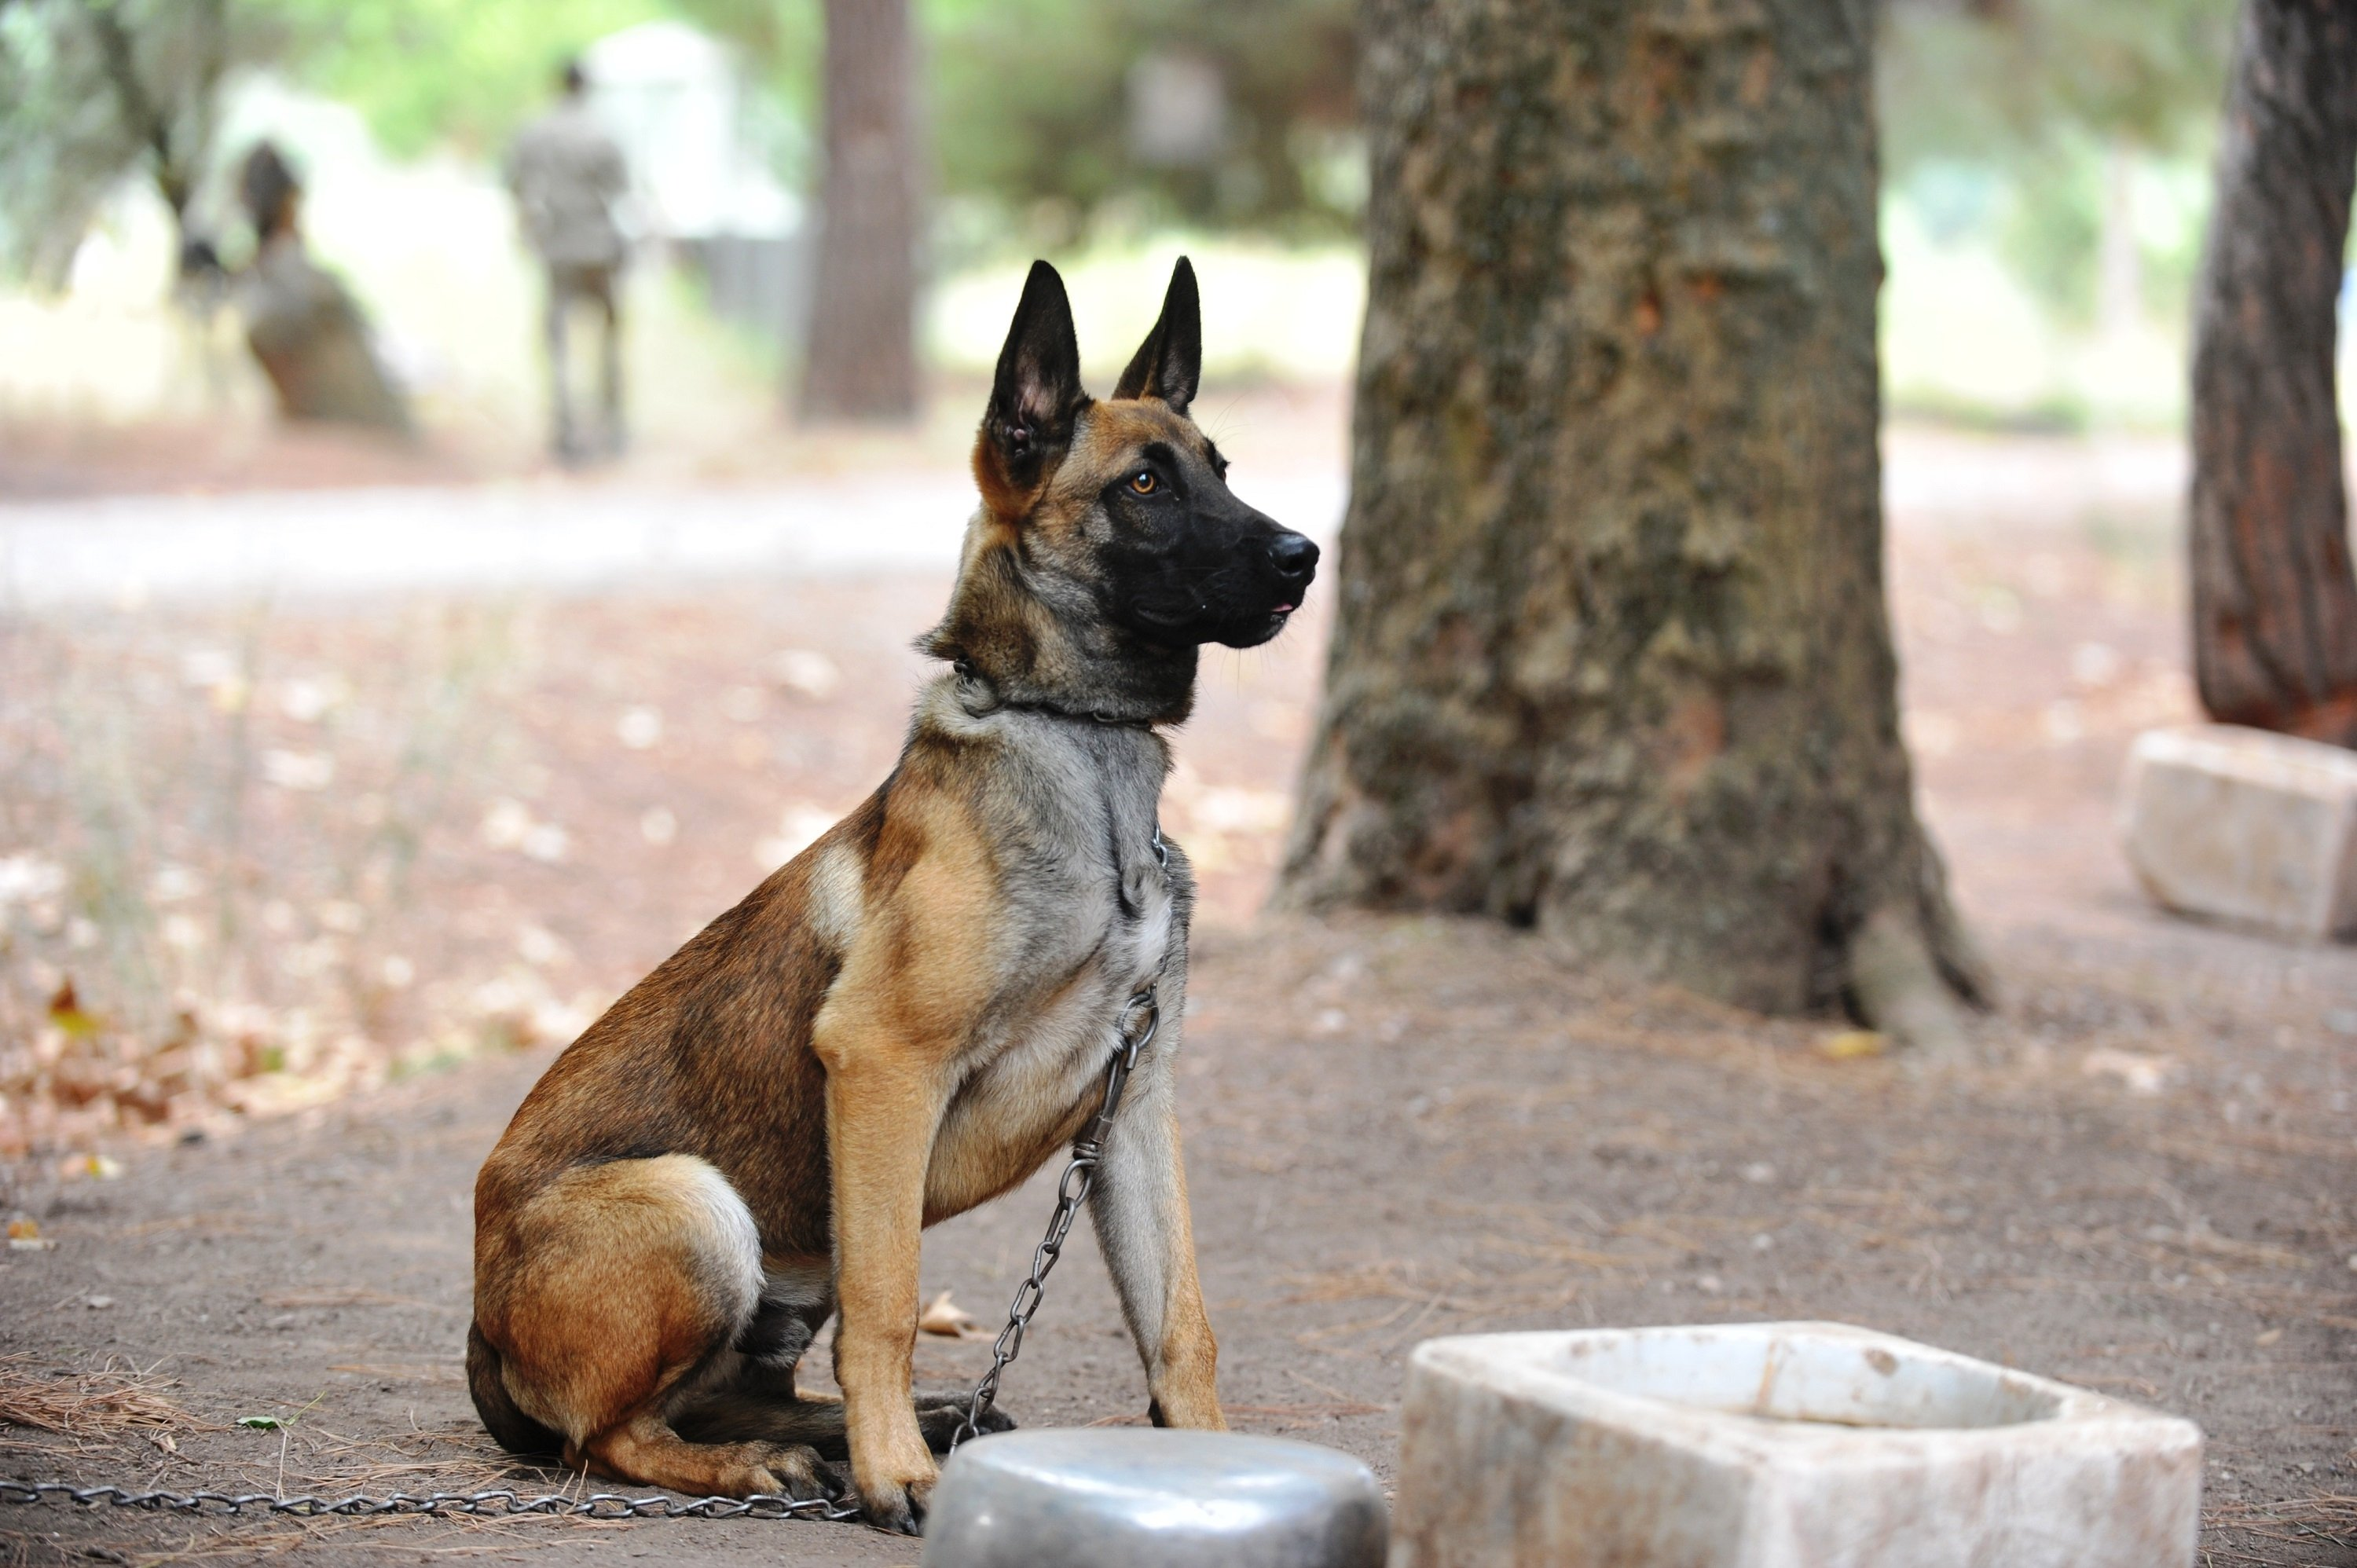 Dogs undergo strict training during their time at training center. (DHA Photo)